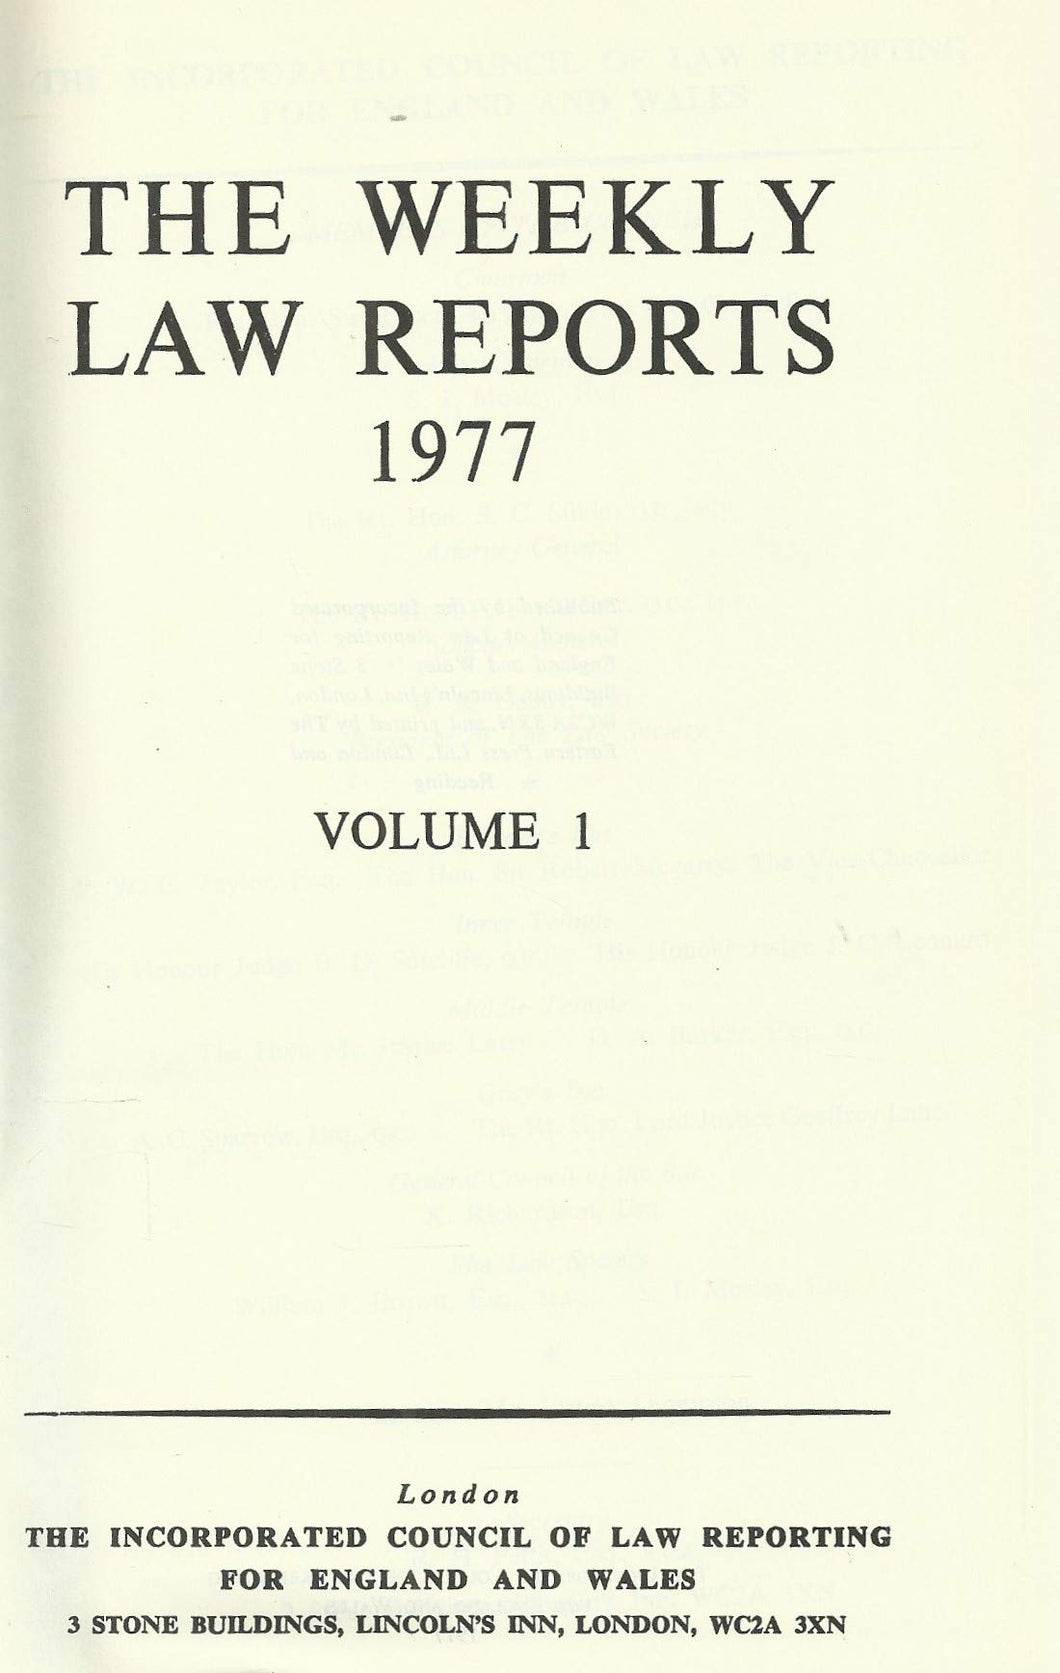 Weekly Law Reports 1977 Vol 1